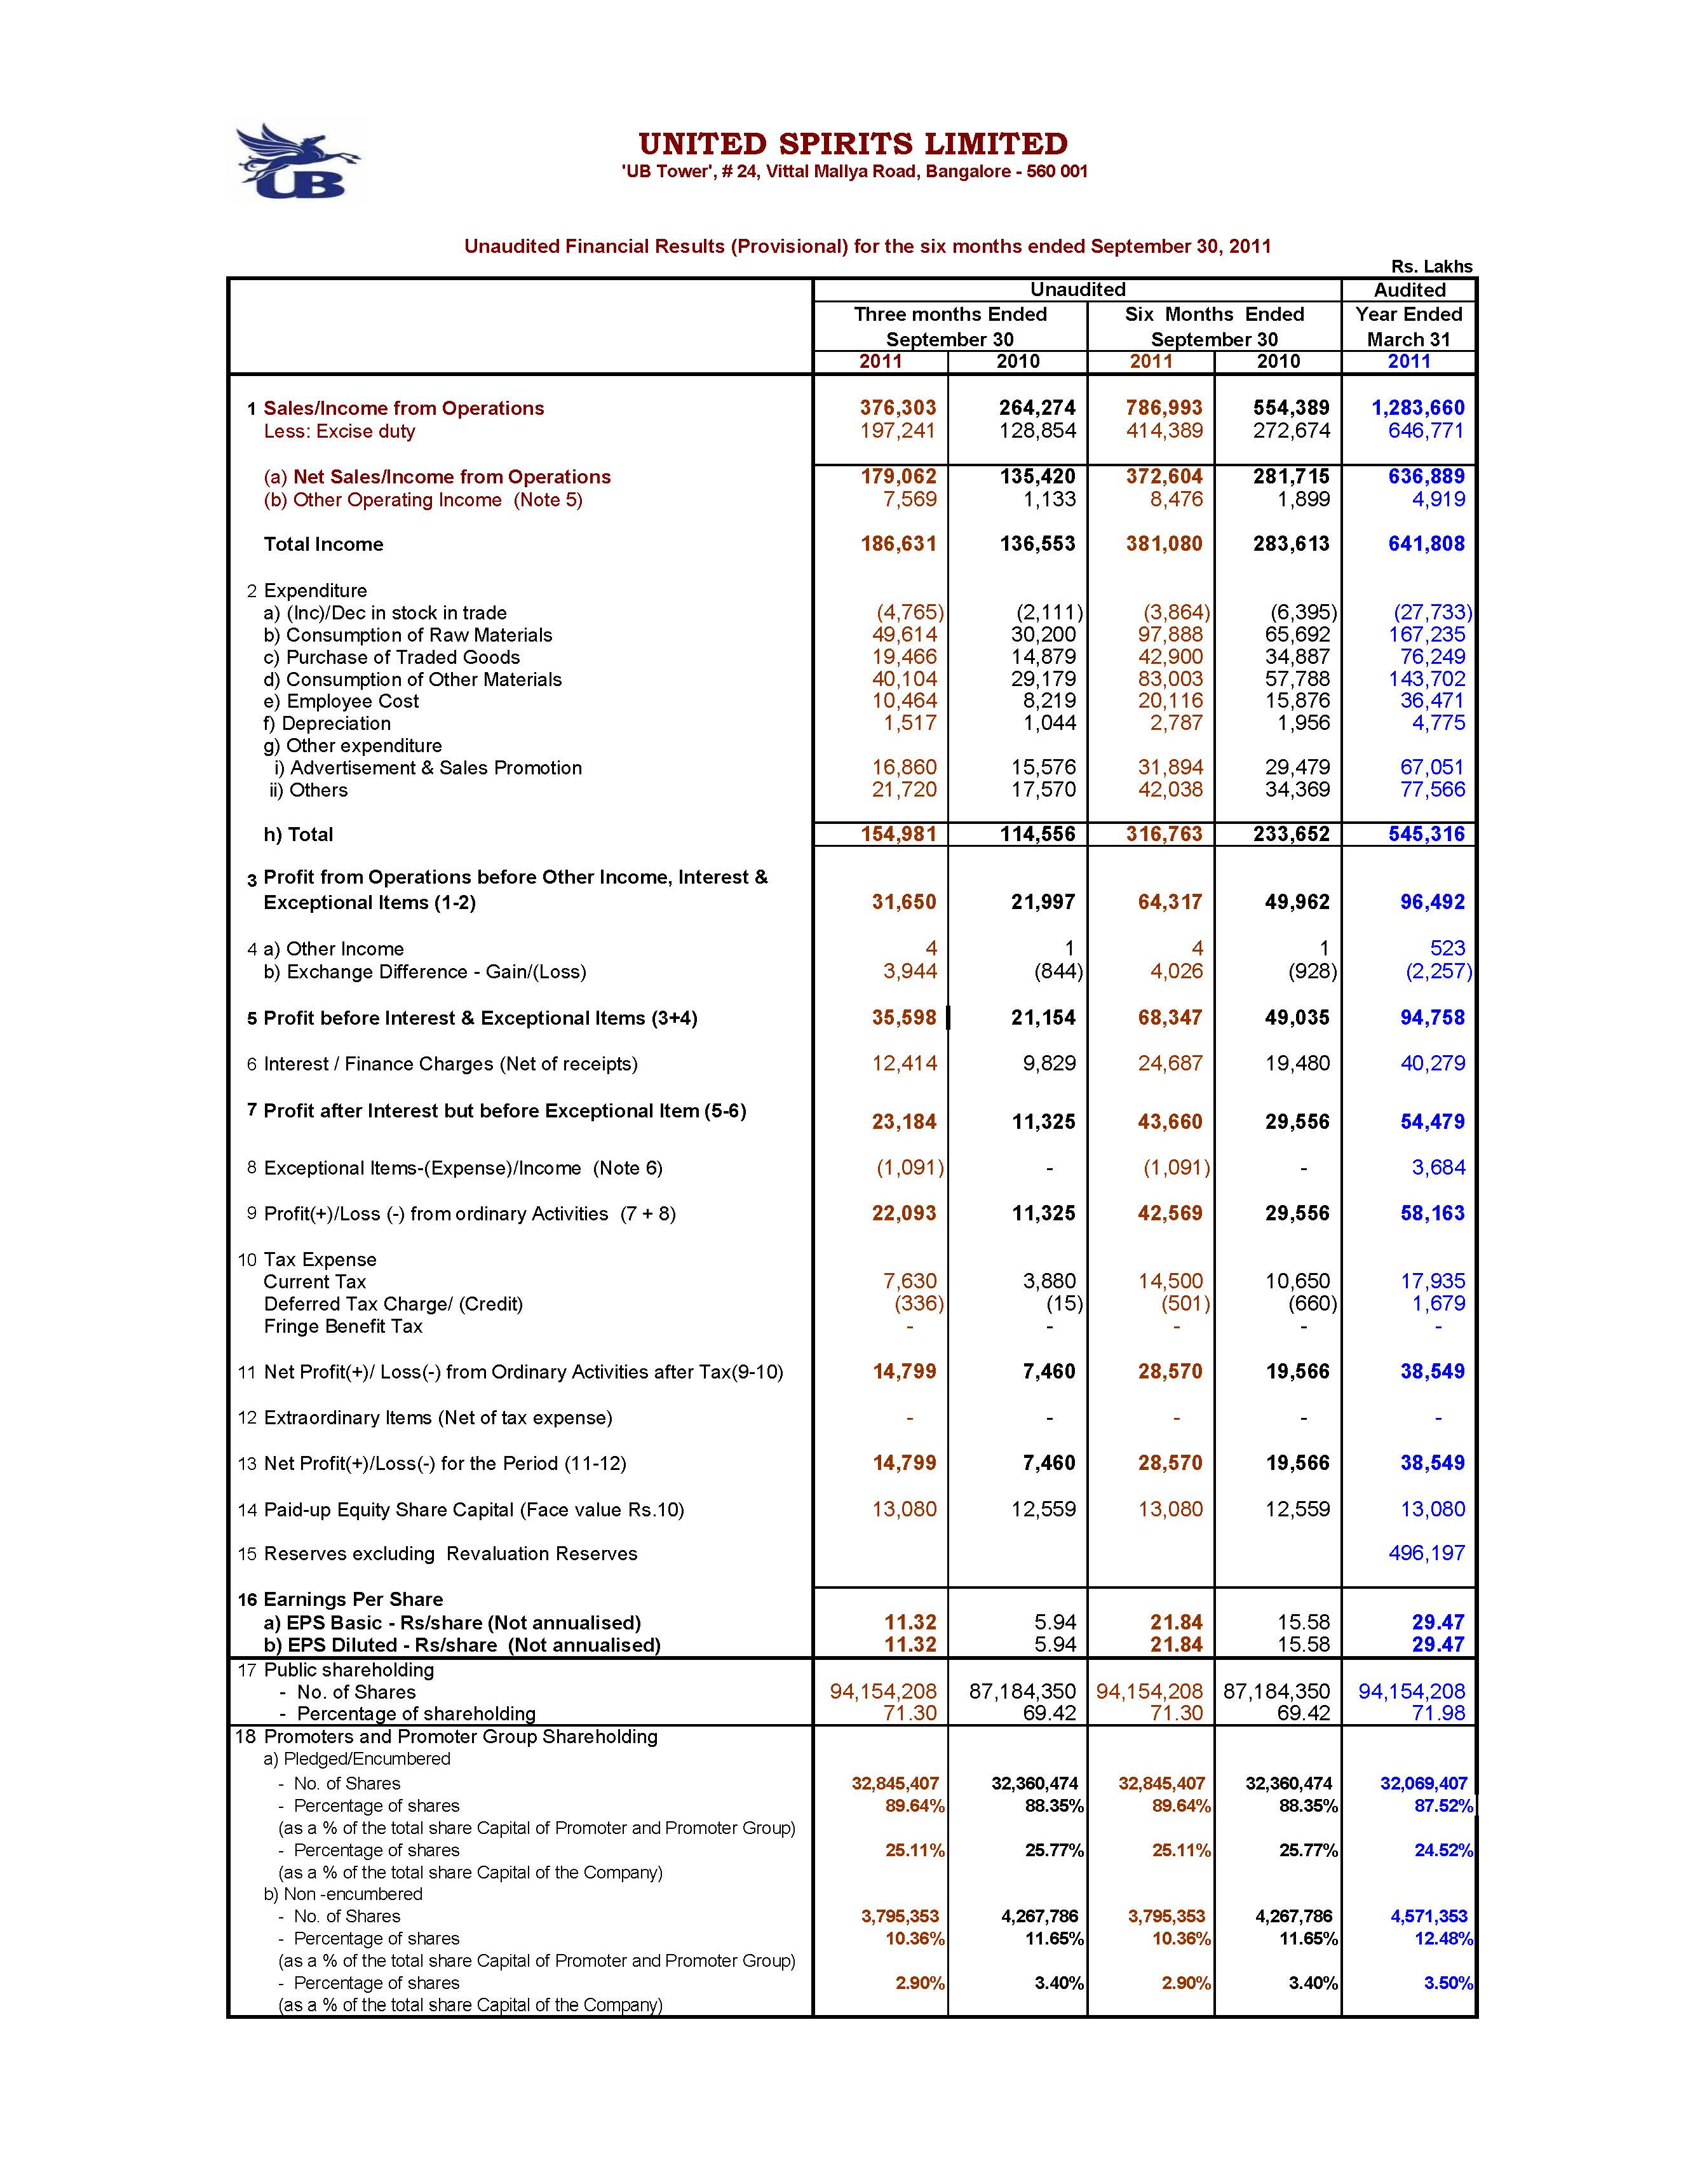 Unaudited Financial Results (Provisional) for the six months ended September 30, 2011